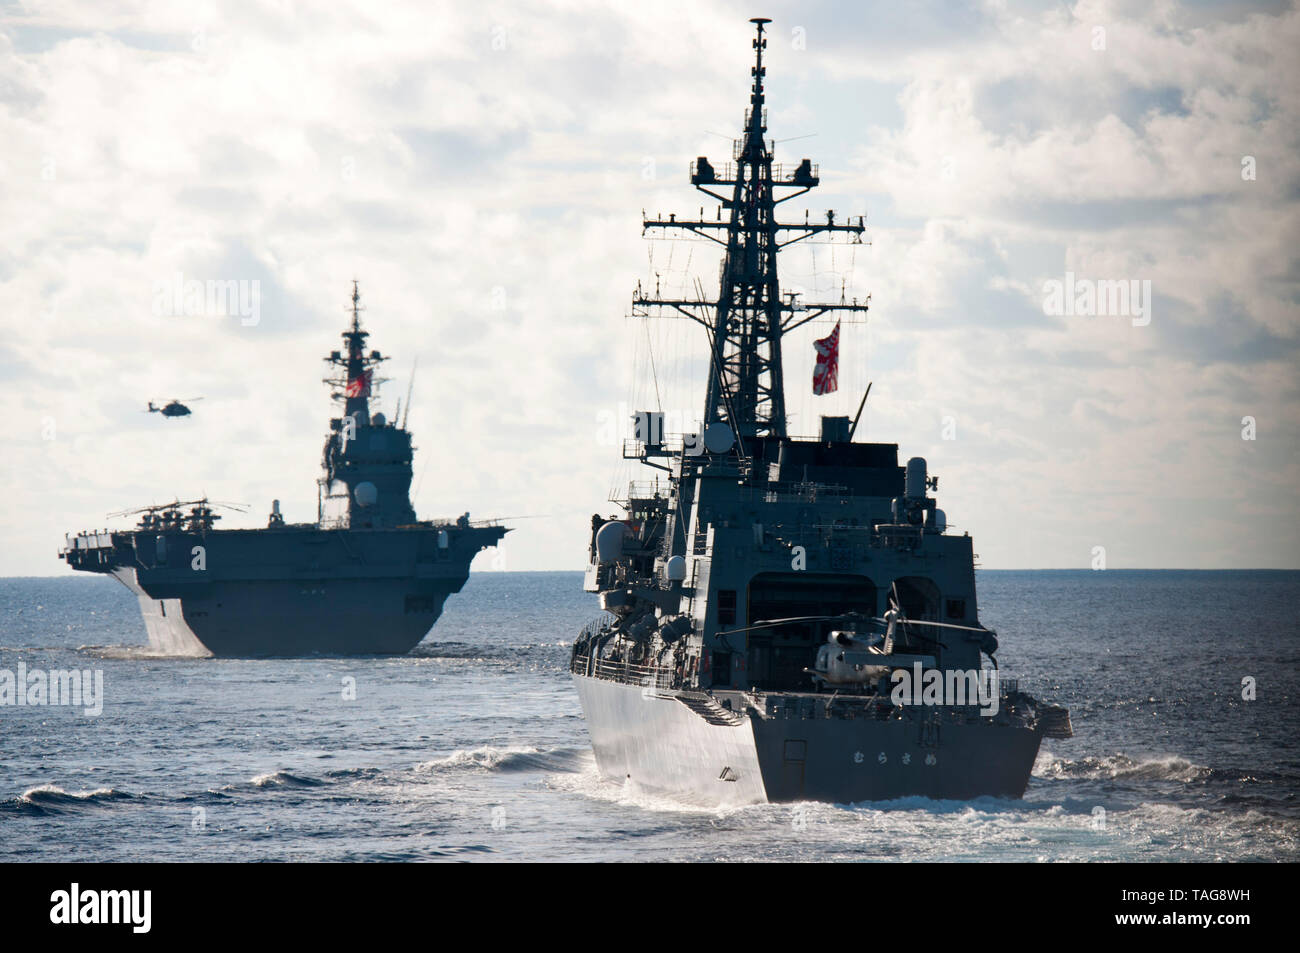 190521-N-VA840-0055 INDIAN OCEAN (May 21, 2019) The Japan Maritime Self Defense Force Izumo-class helicopter destroyer JS Izumo (DDH 183), and the Murasame-class destroyer JS Murasame (DD 101) sail in formation during exercise La Perouse. (U.S. Navy photo by Mass Communication Specialist 1st Class Leonard Adams) - Stock Image